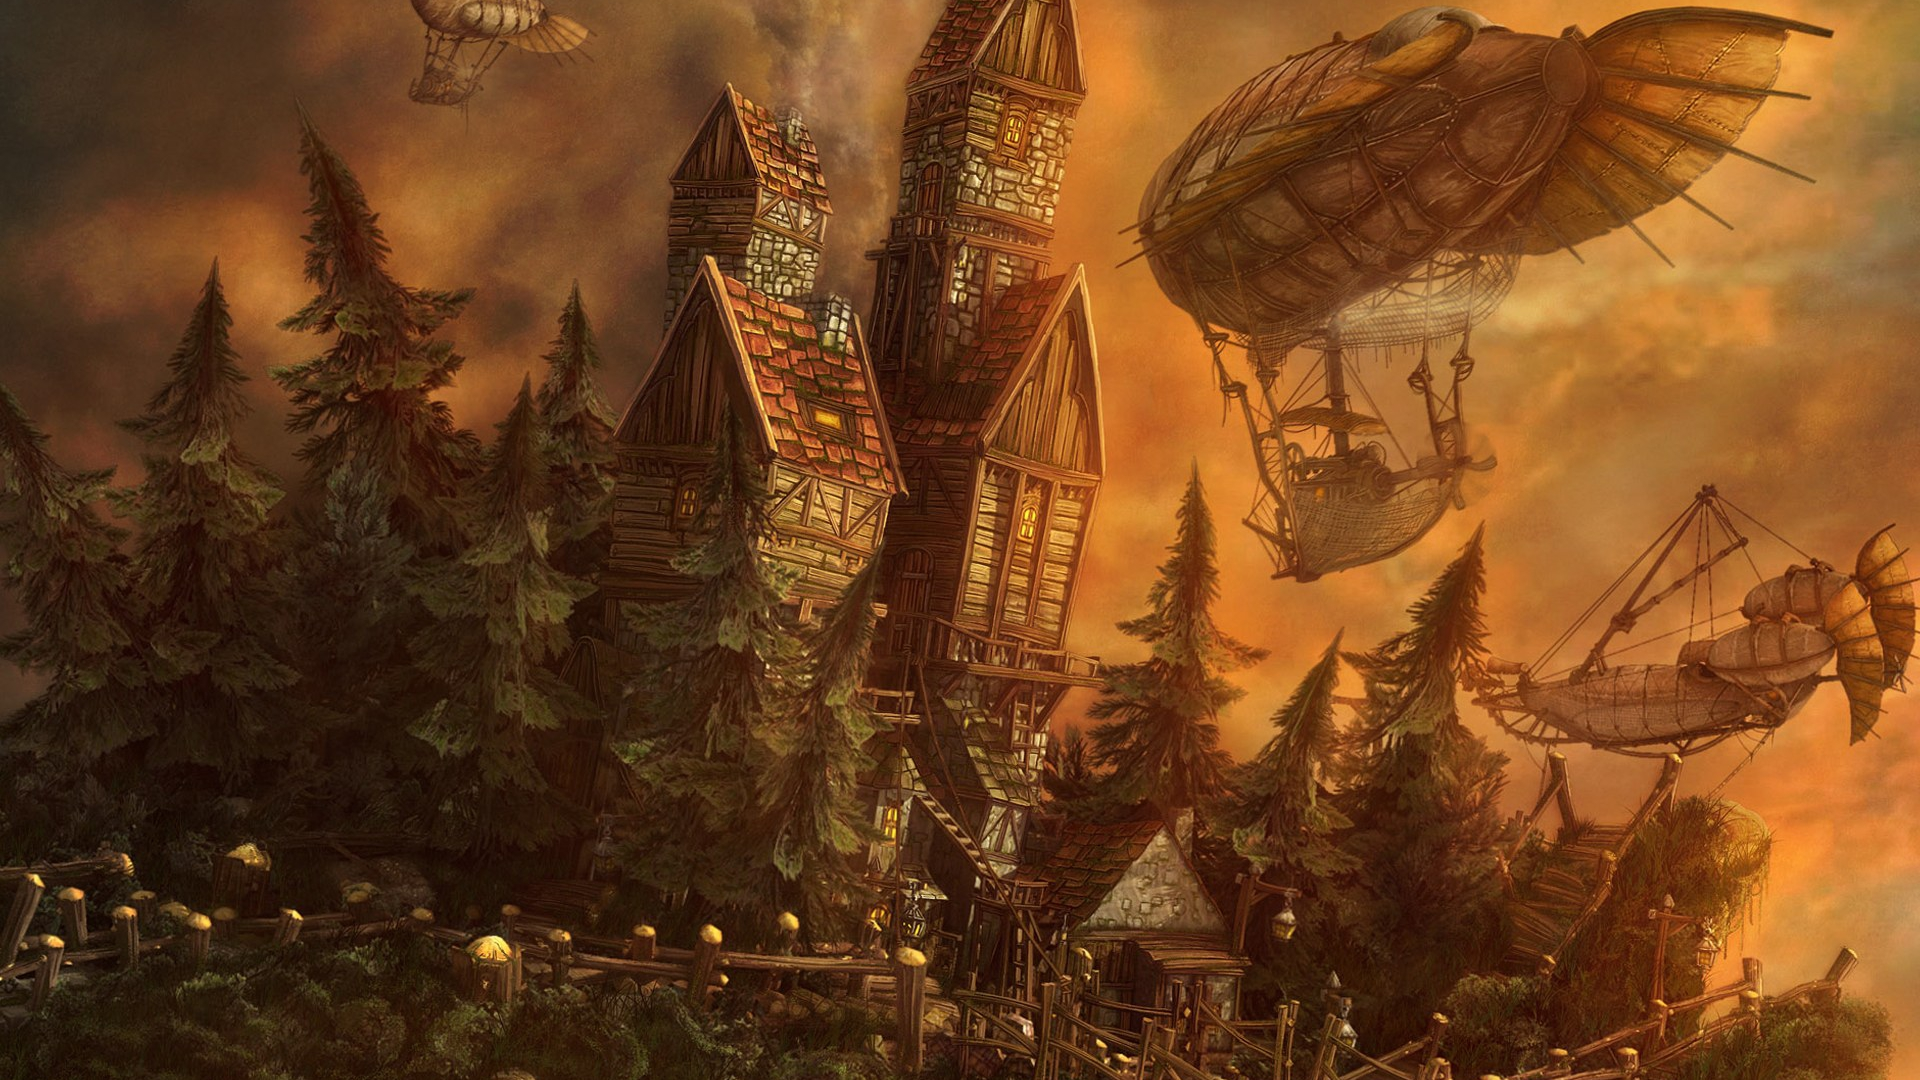 Absolutely Fantastic Hd Fantasy Wallpapers: Steampunk Wallpapers High Quality